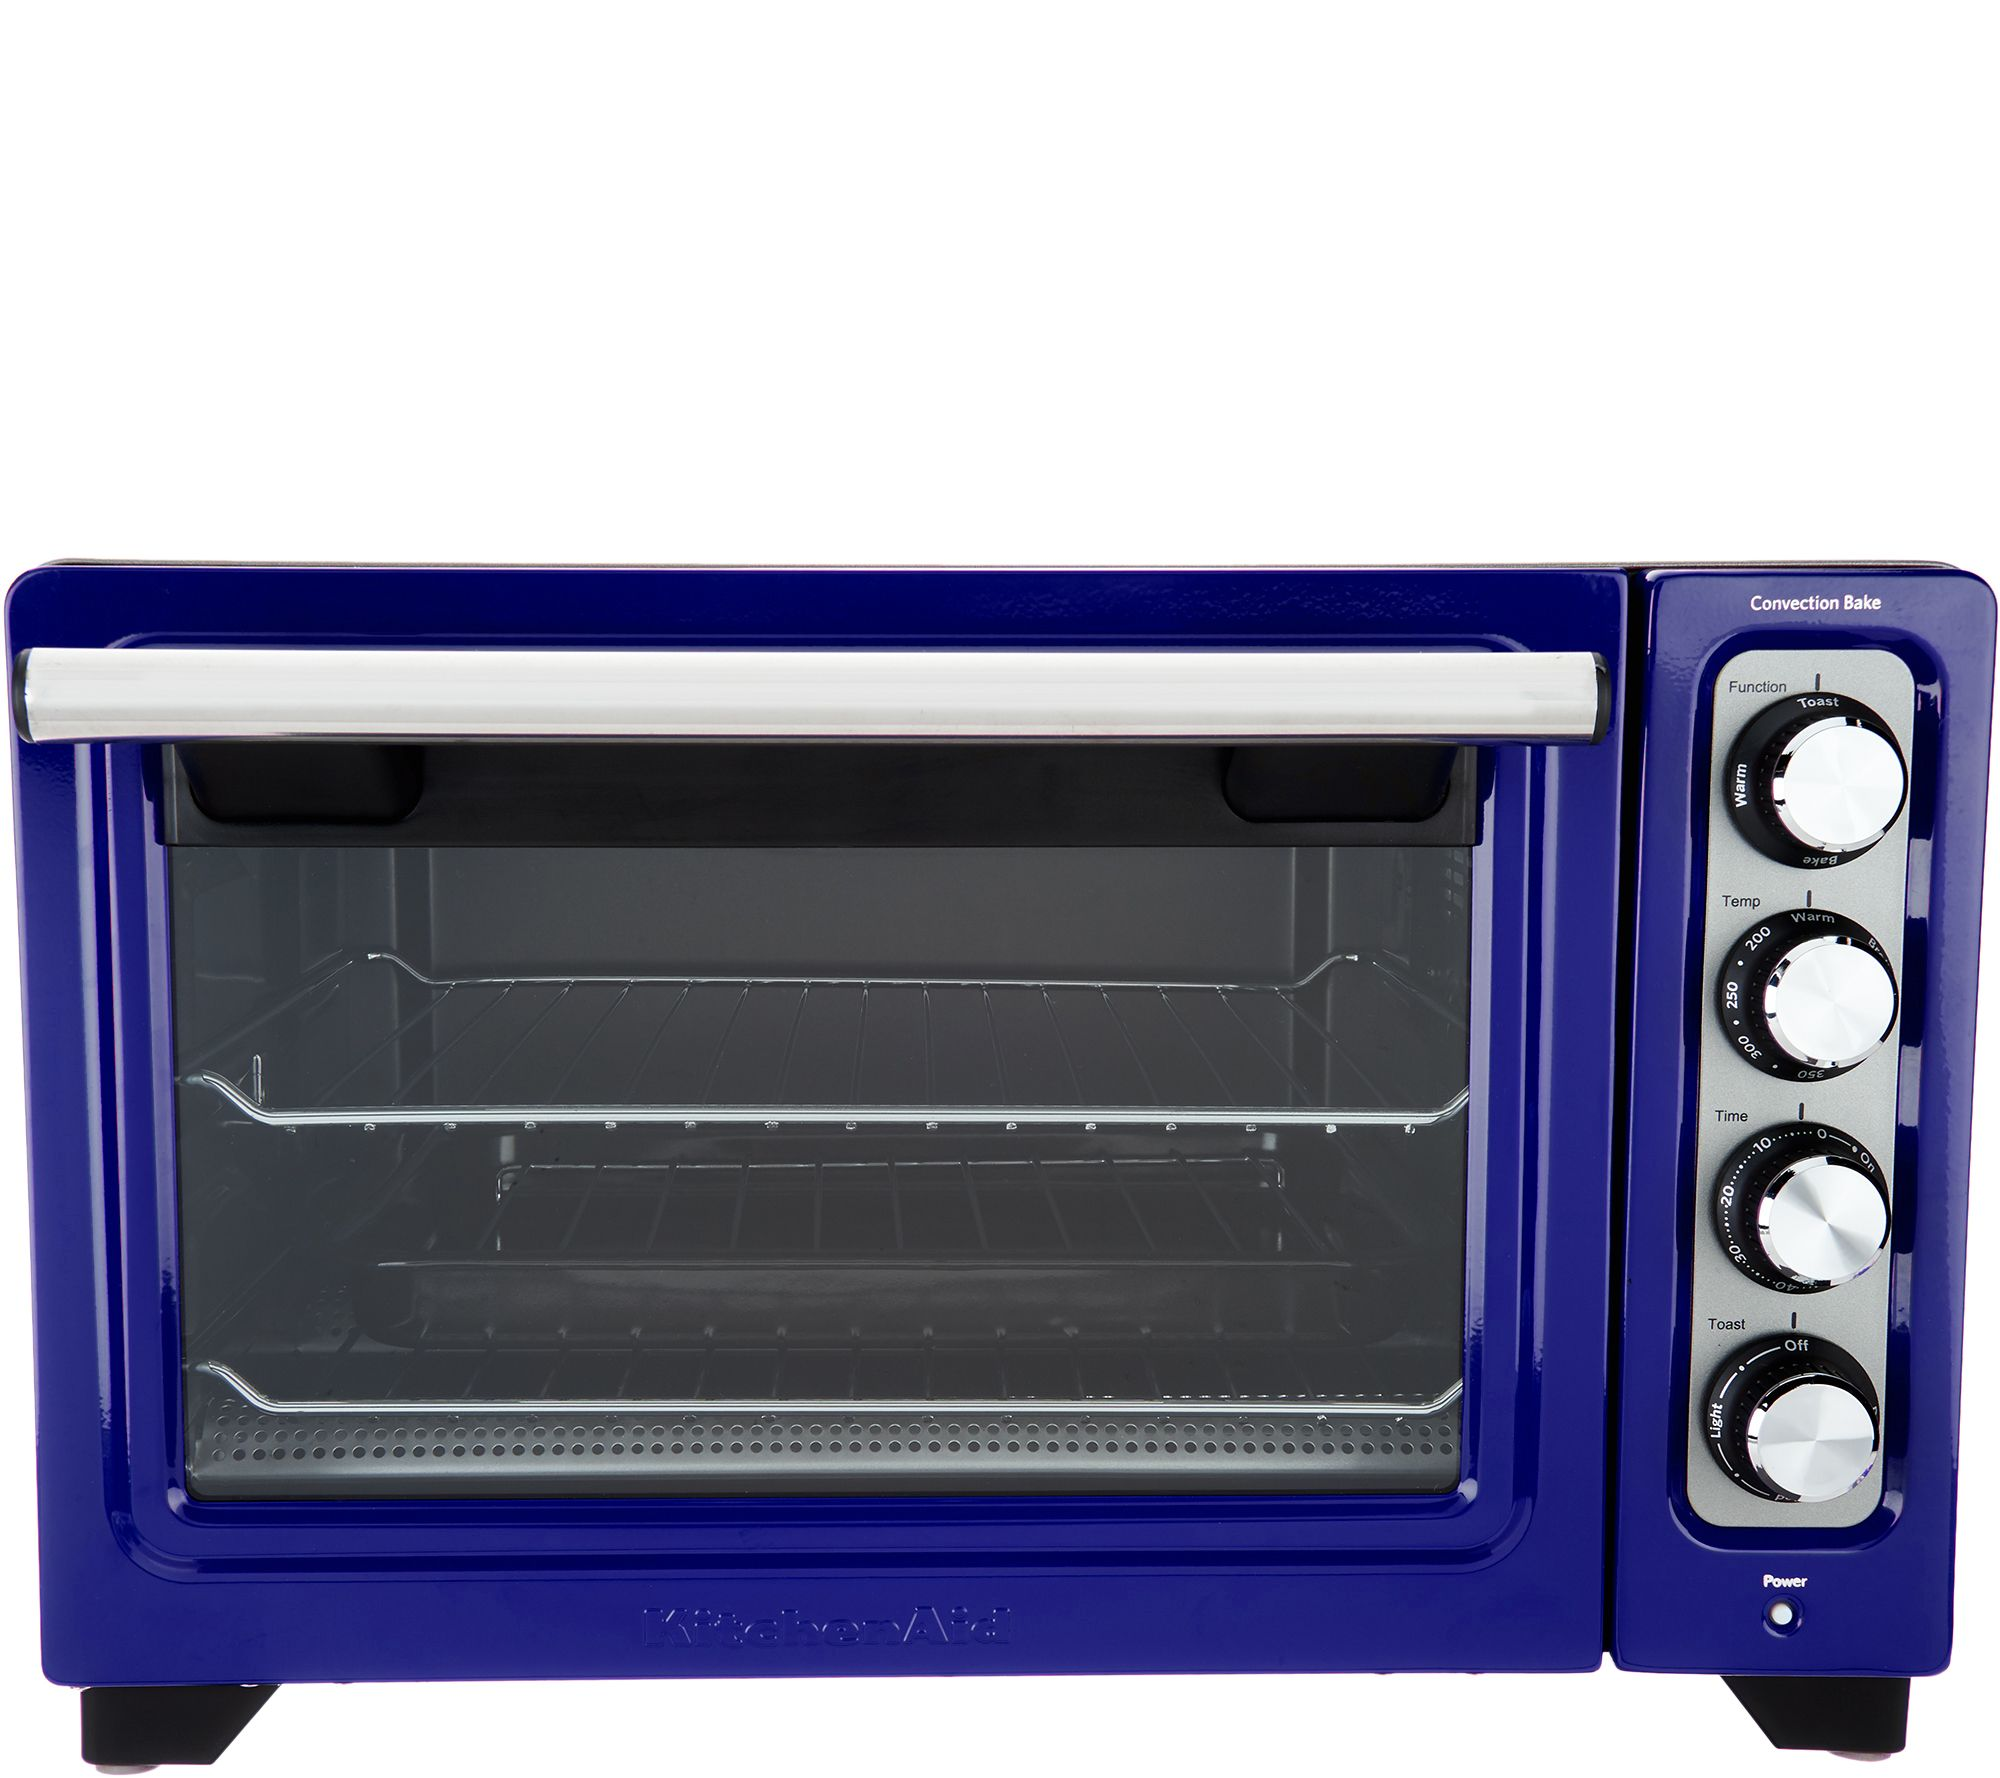 Kitchenaid Countertop Convection Oven With Extra Broil Pan Page 1